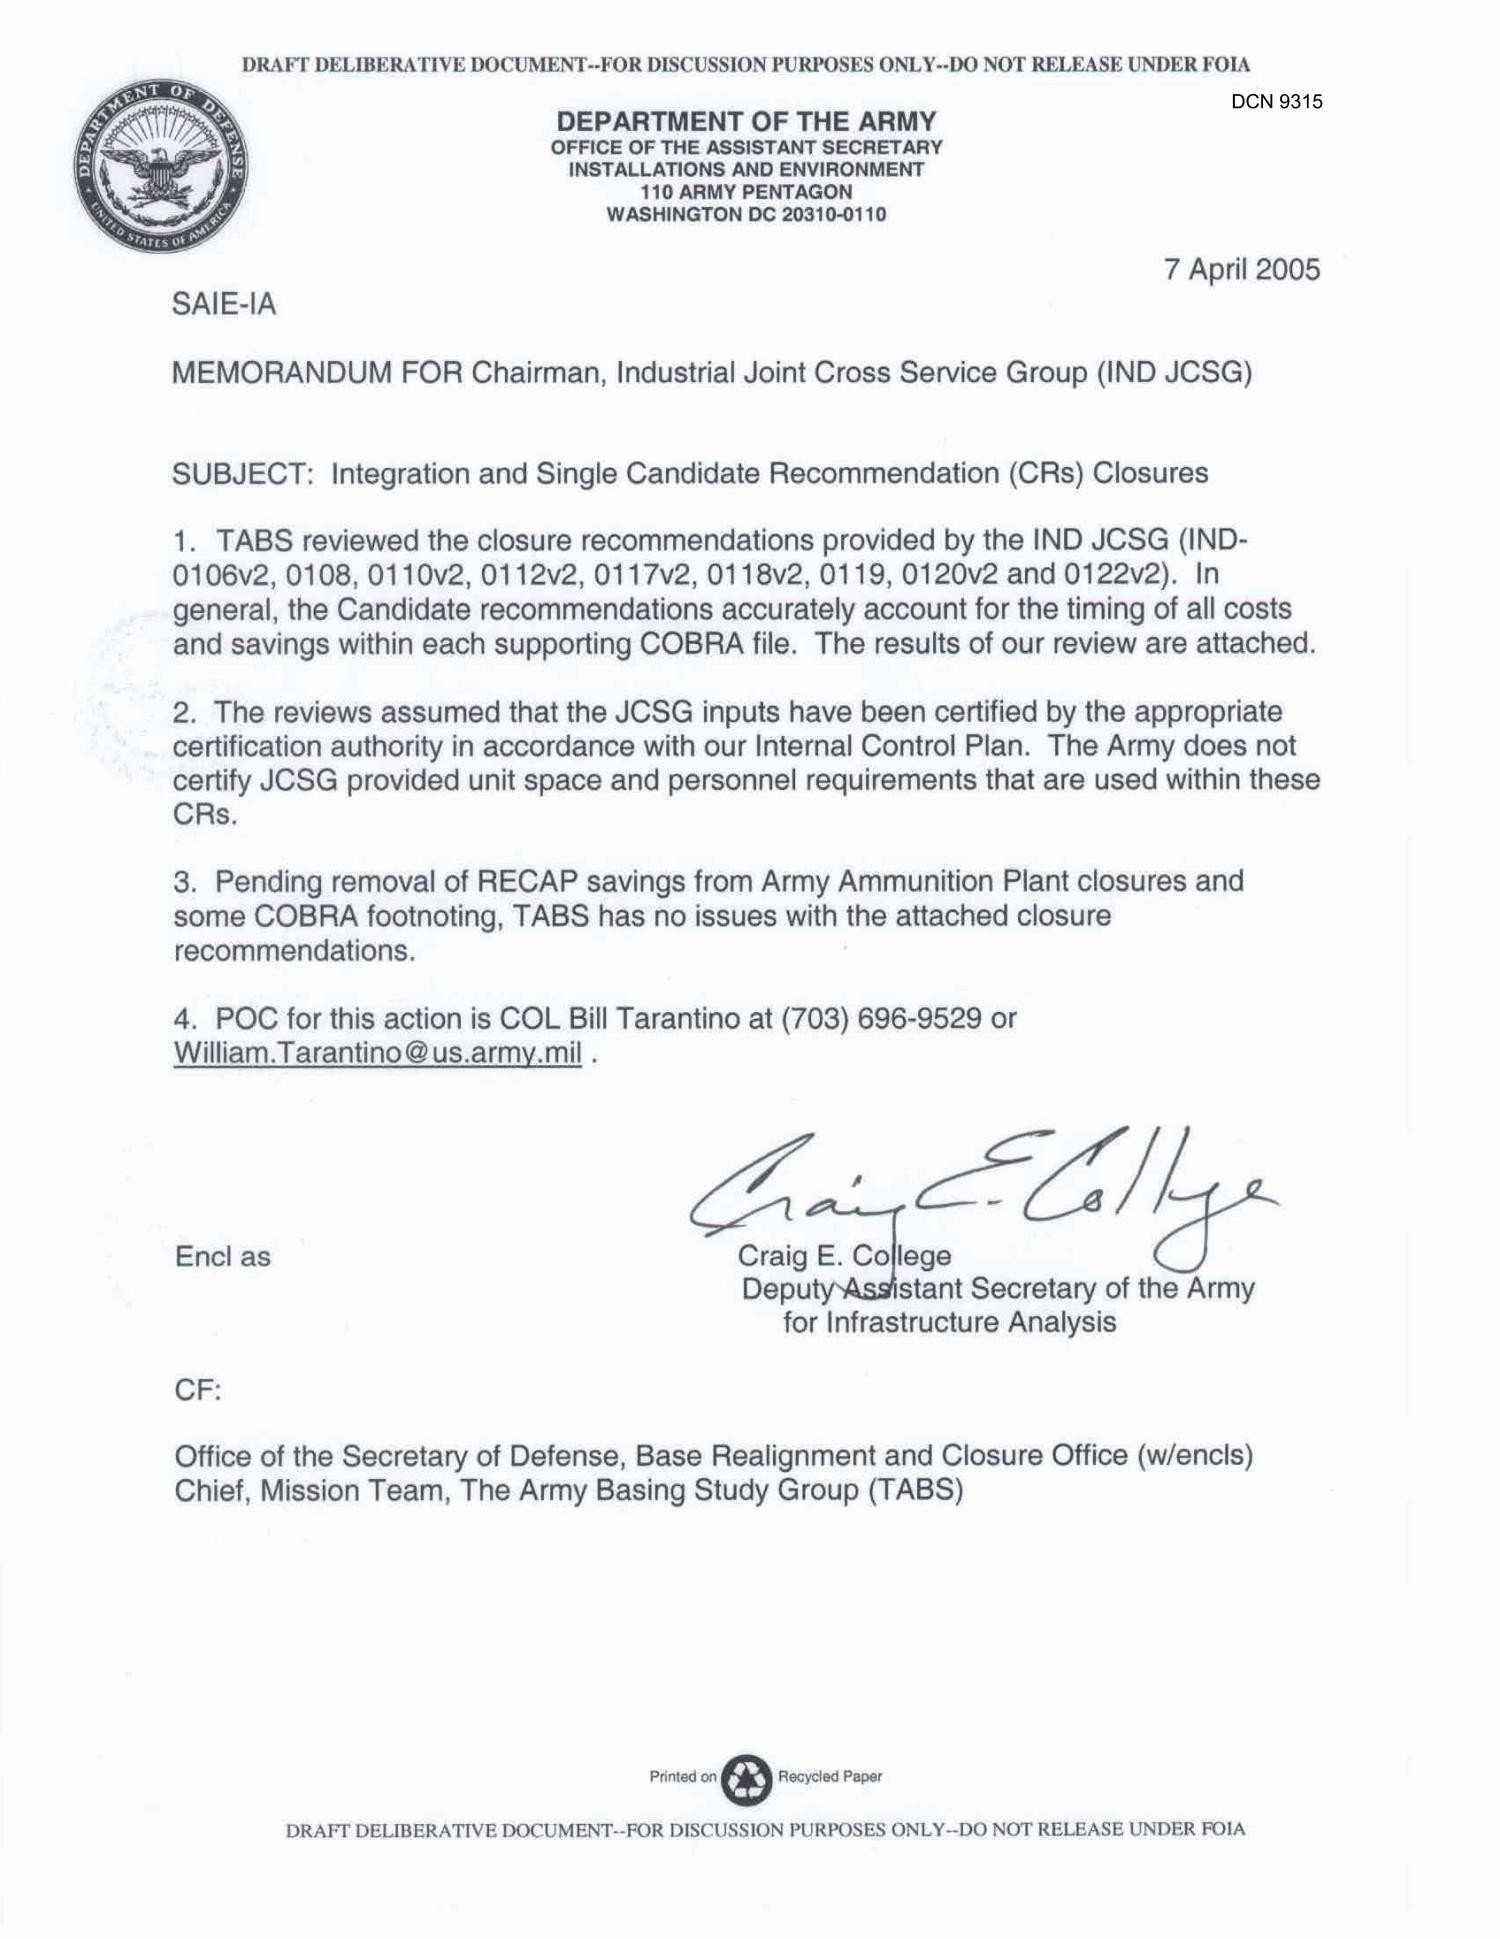 Army Memorandum for Record Template Department Of the Army Memo Dated 7 April 2005 for